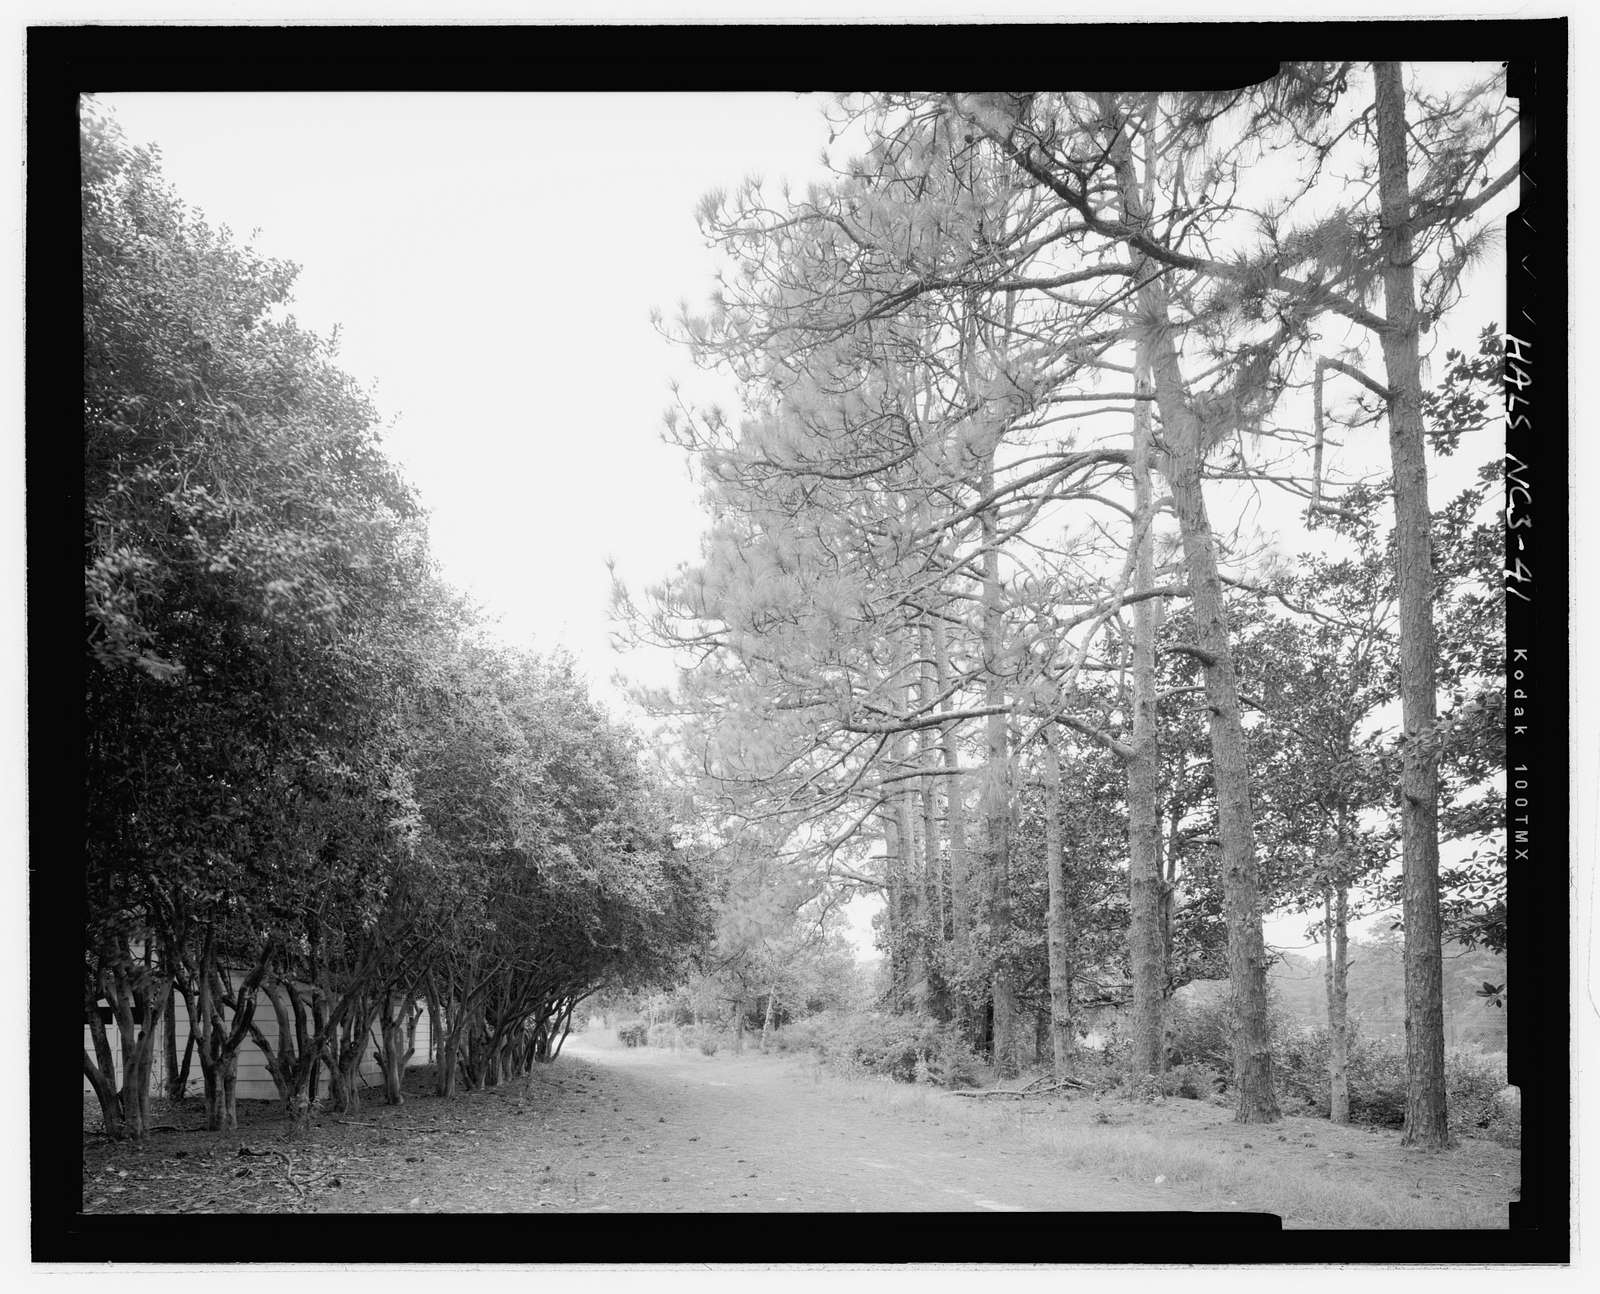 Overhills, Fort Bragg Military Reservation, Approximately 15 miles NW of Fayetteville, Overhills, Harnett County, NC